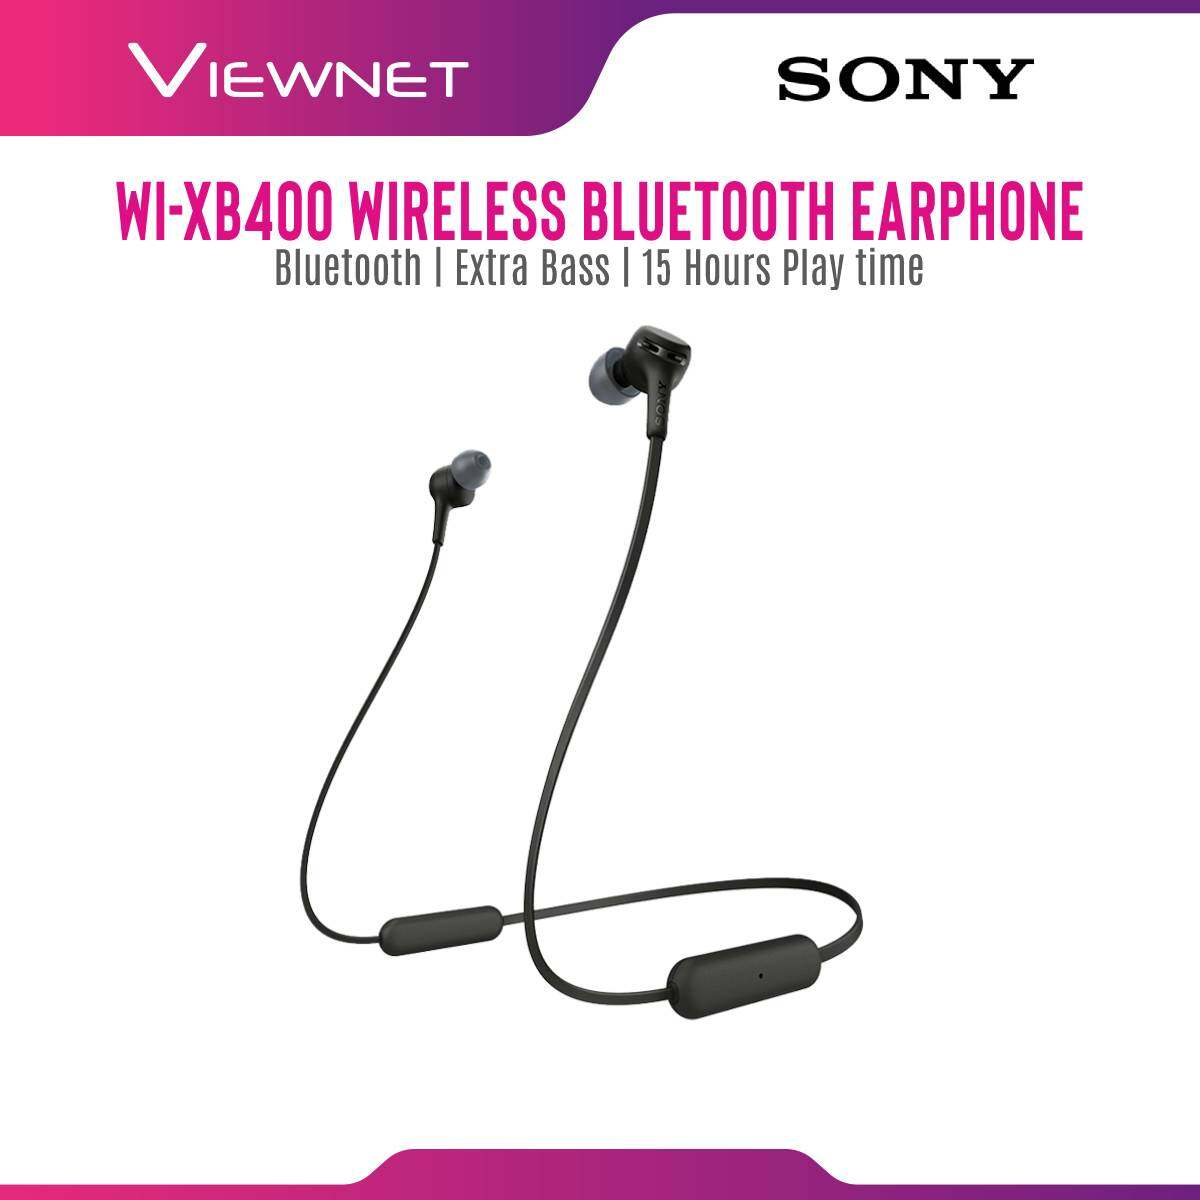 Sony Wireless In-ear Headphones WI-XB400 black Extra Bass Bluetooth Quick Charge 12mm Driver